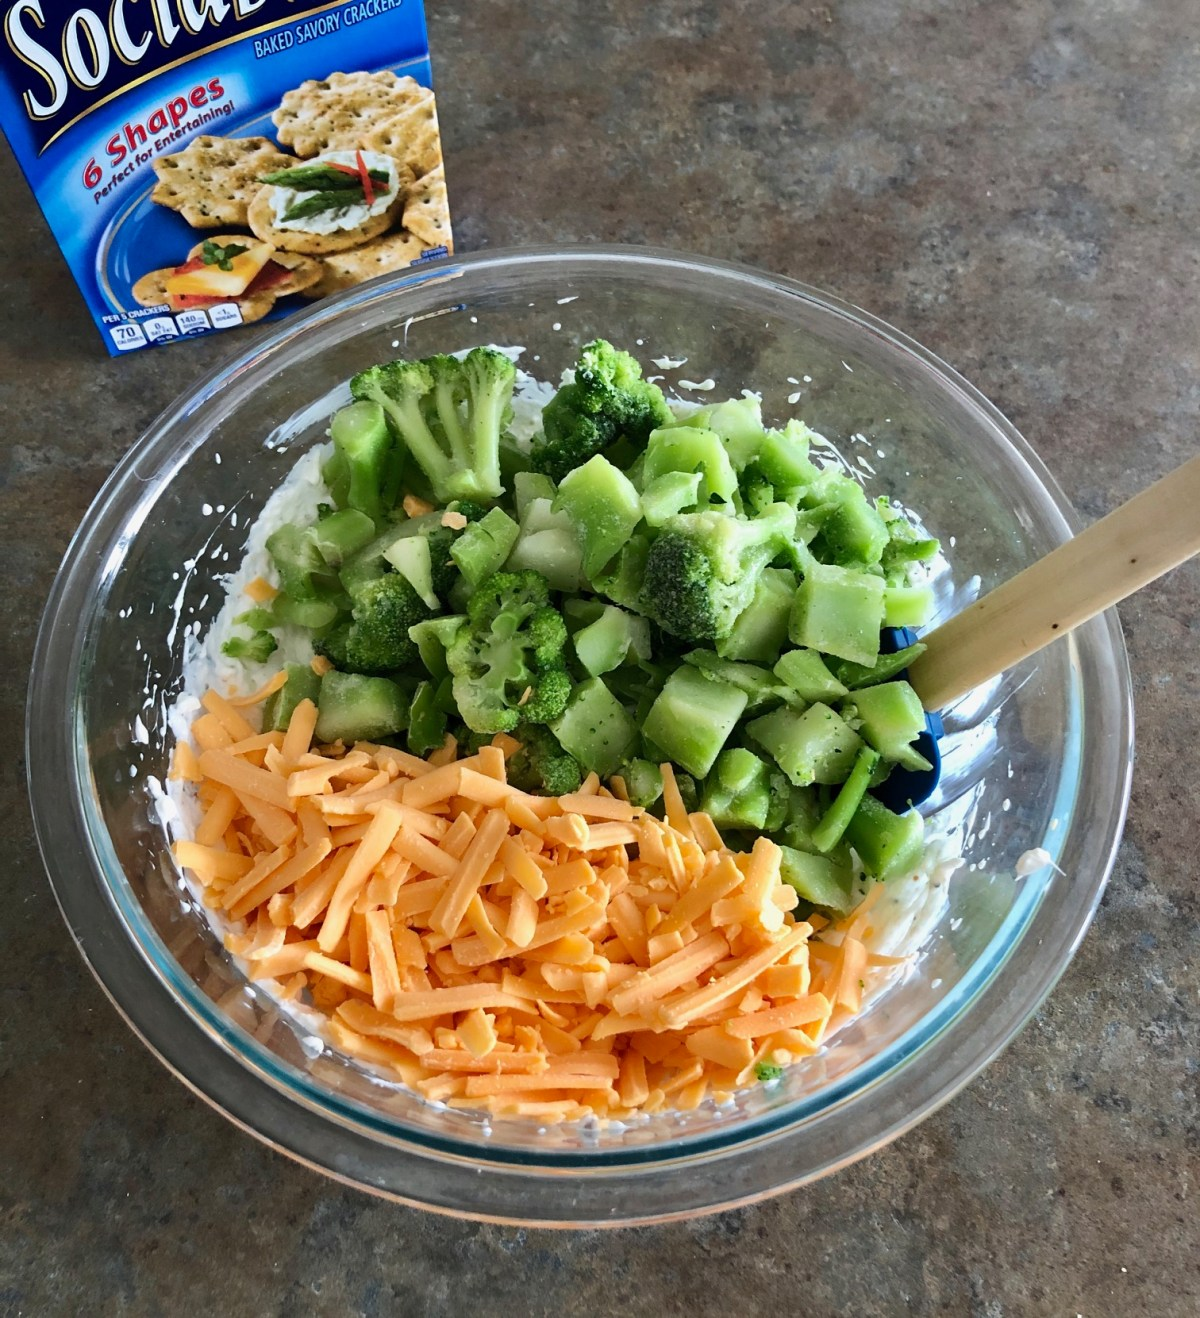 Chopped broccoli florets and shredded cheddar cheese are folded into the Broccoli Cheese Spread.